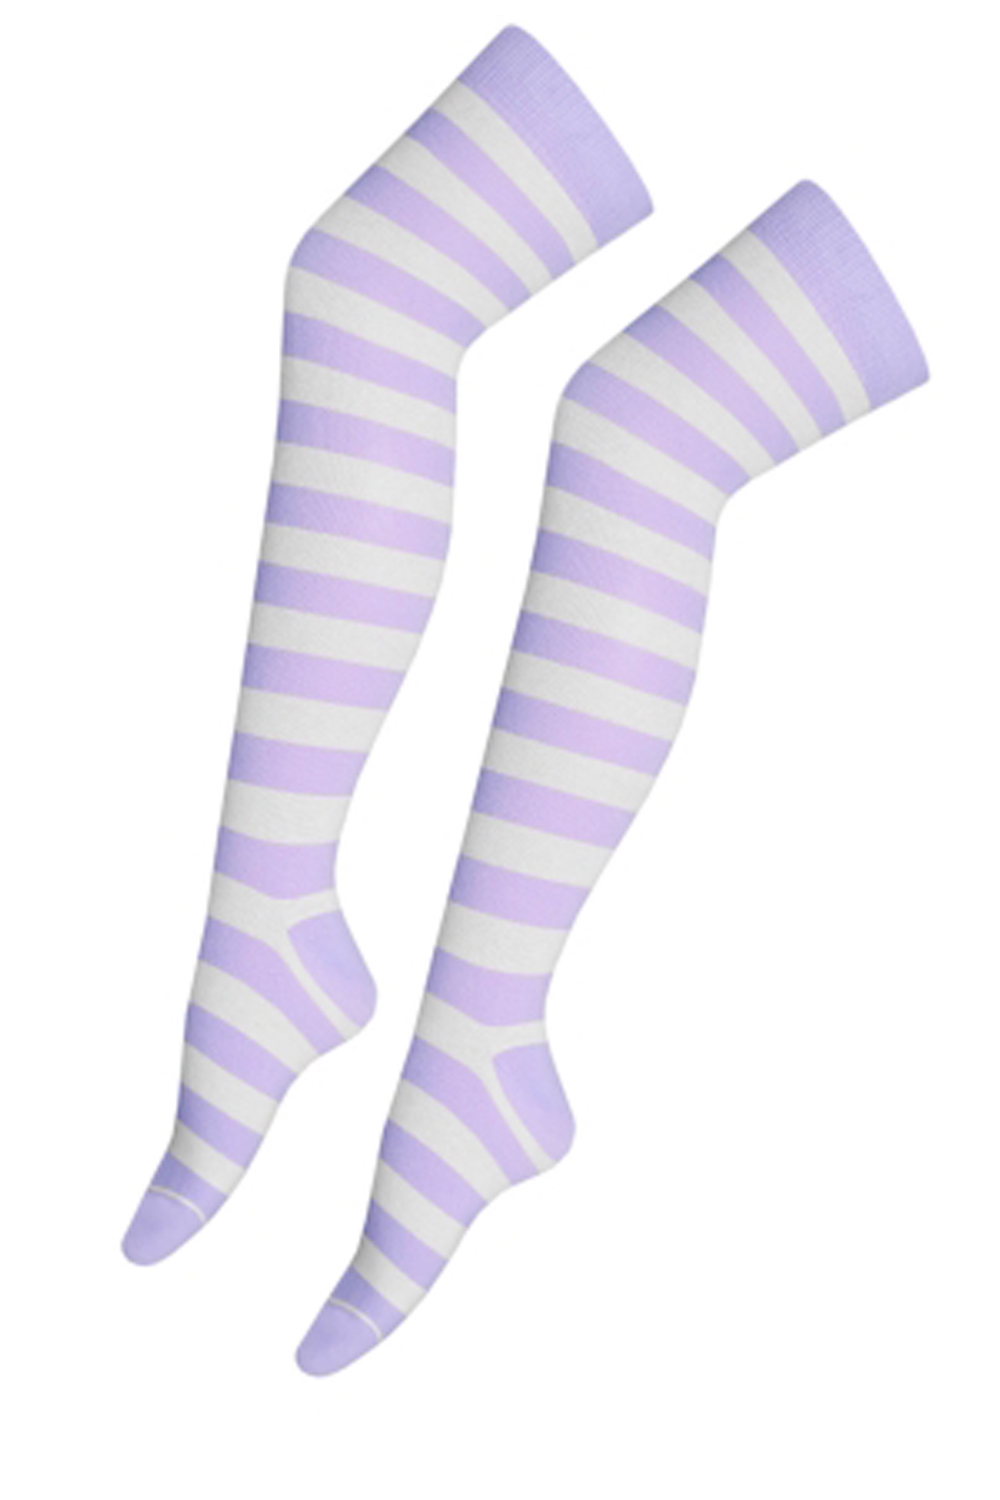 Light Purple & White OTK Stripe Socks (12 Pairs)